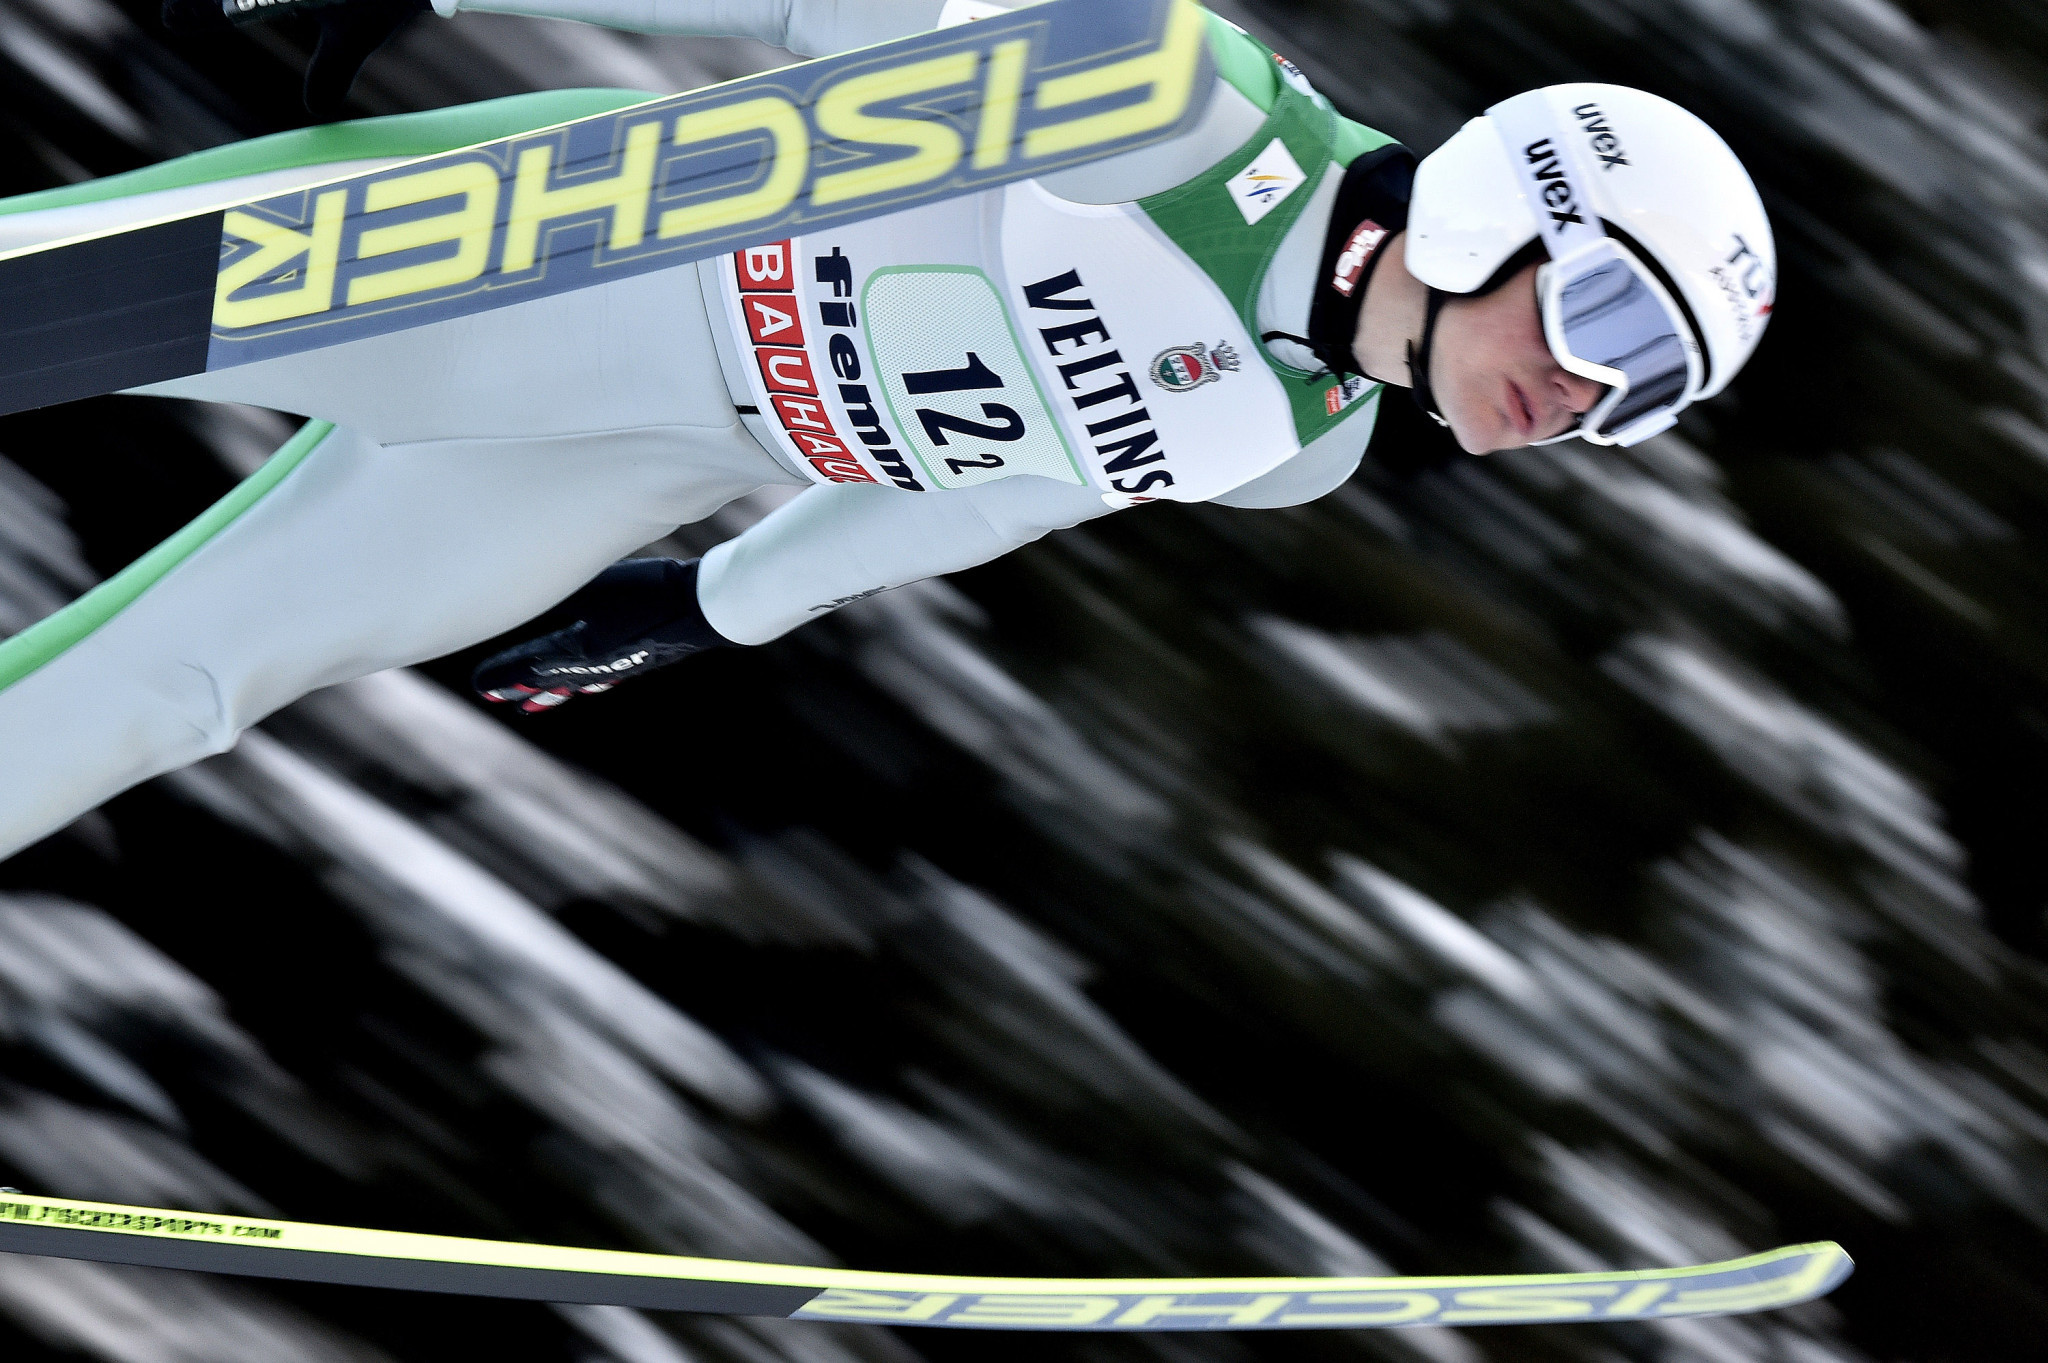 Schneider retires from Nordic combined due to health problems